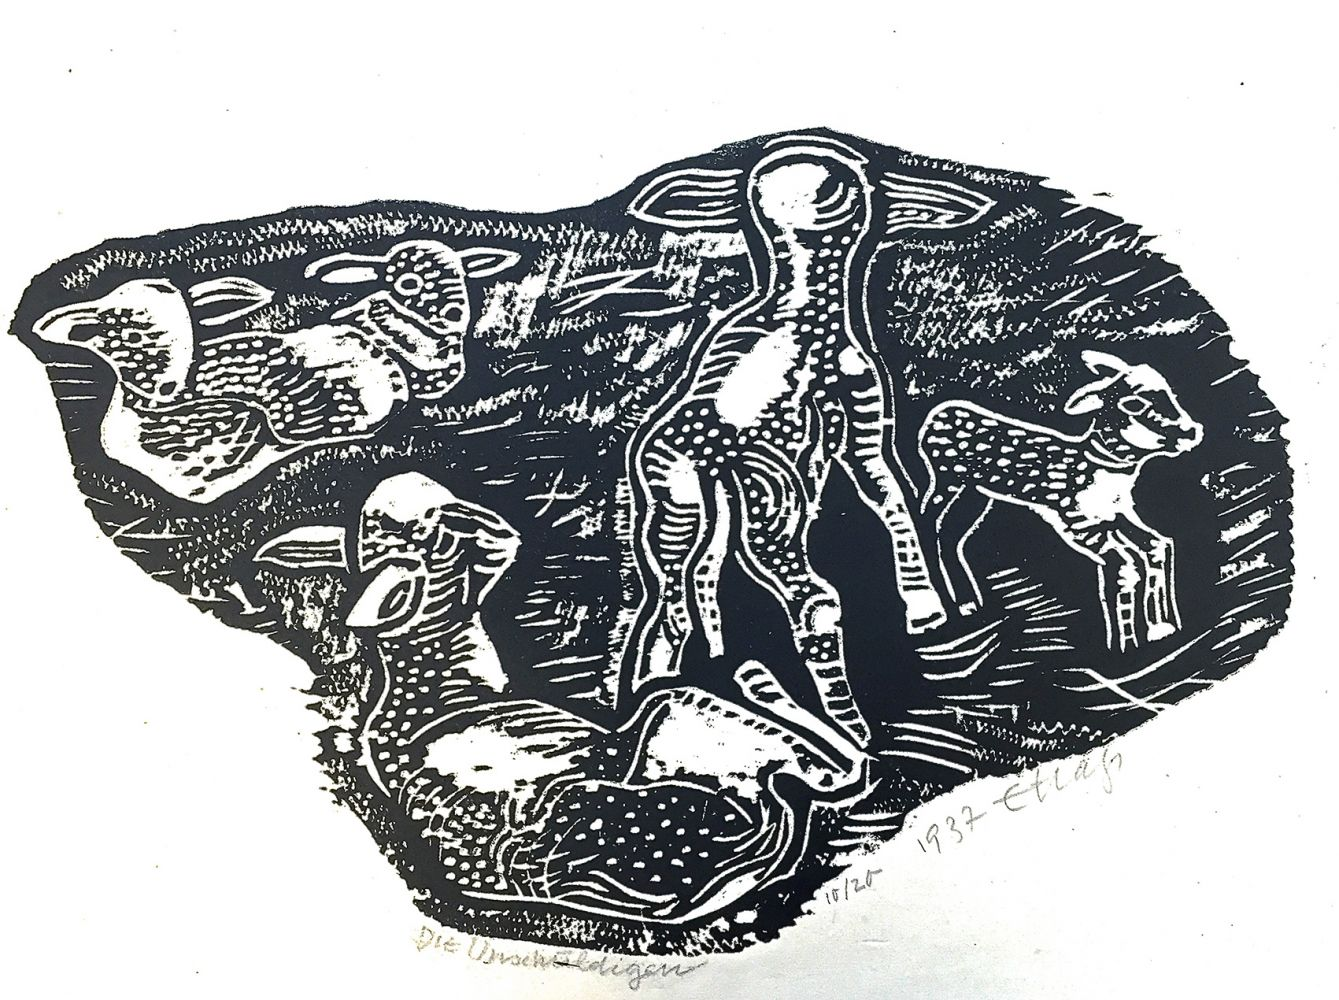 Erwin Hahs | The Innocent | 1937 | woodcut | signed, dated and titled | 34,5 x 49